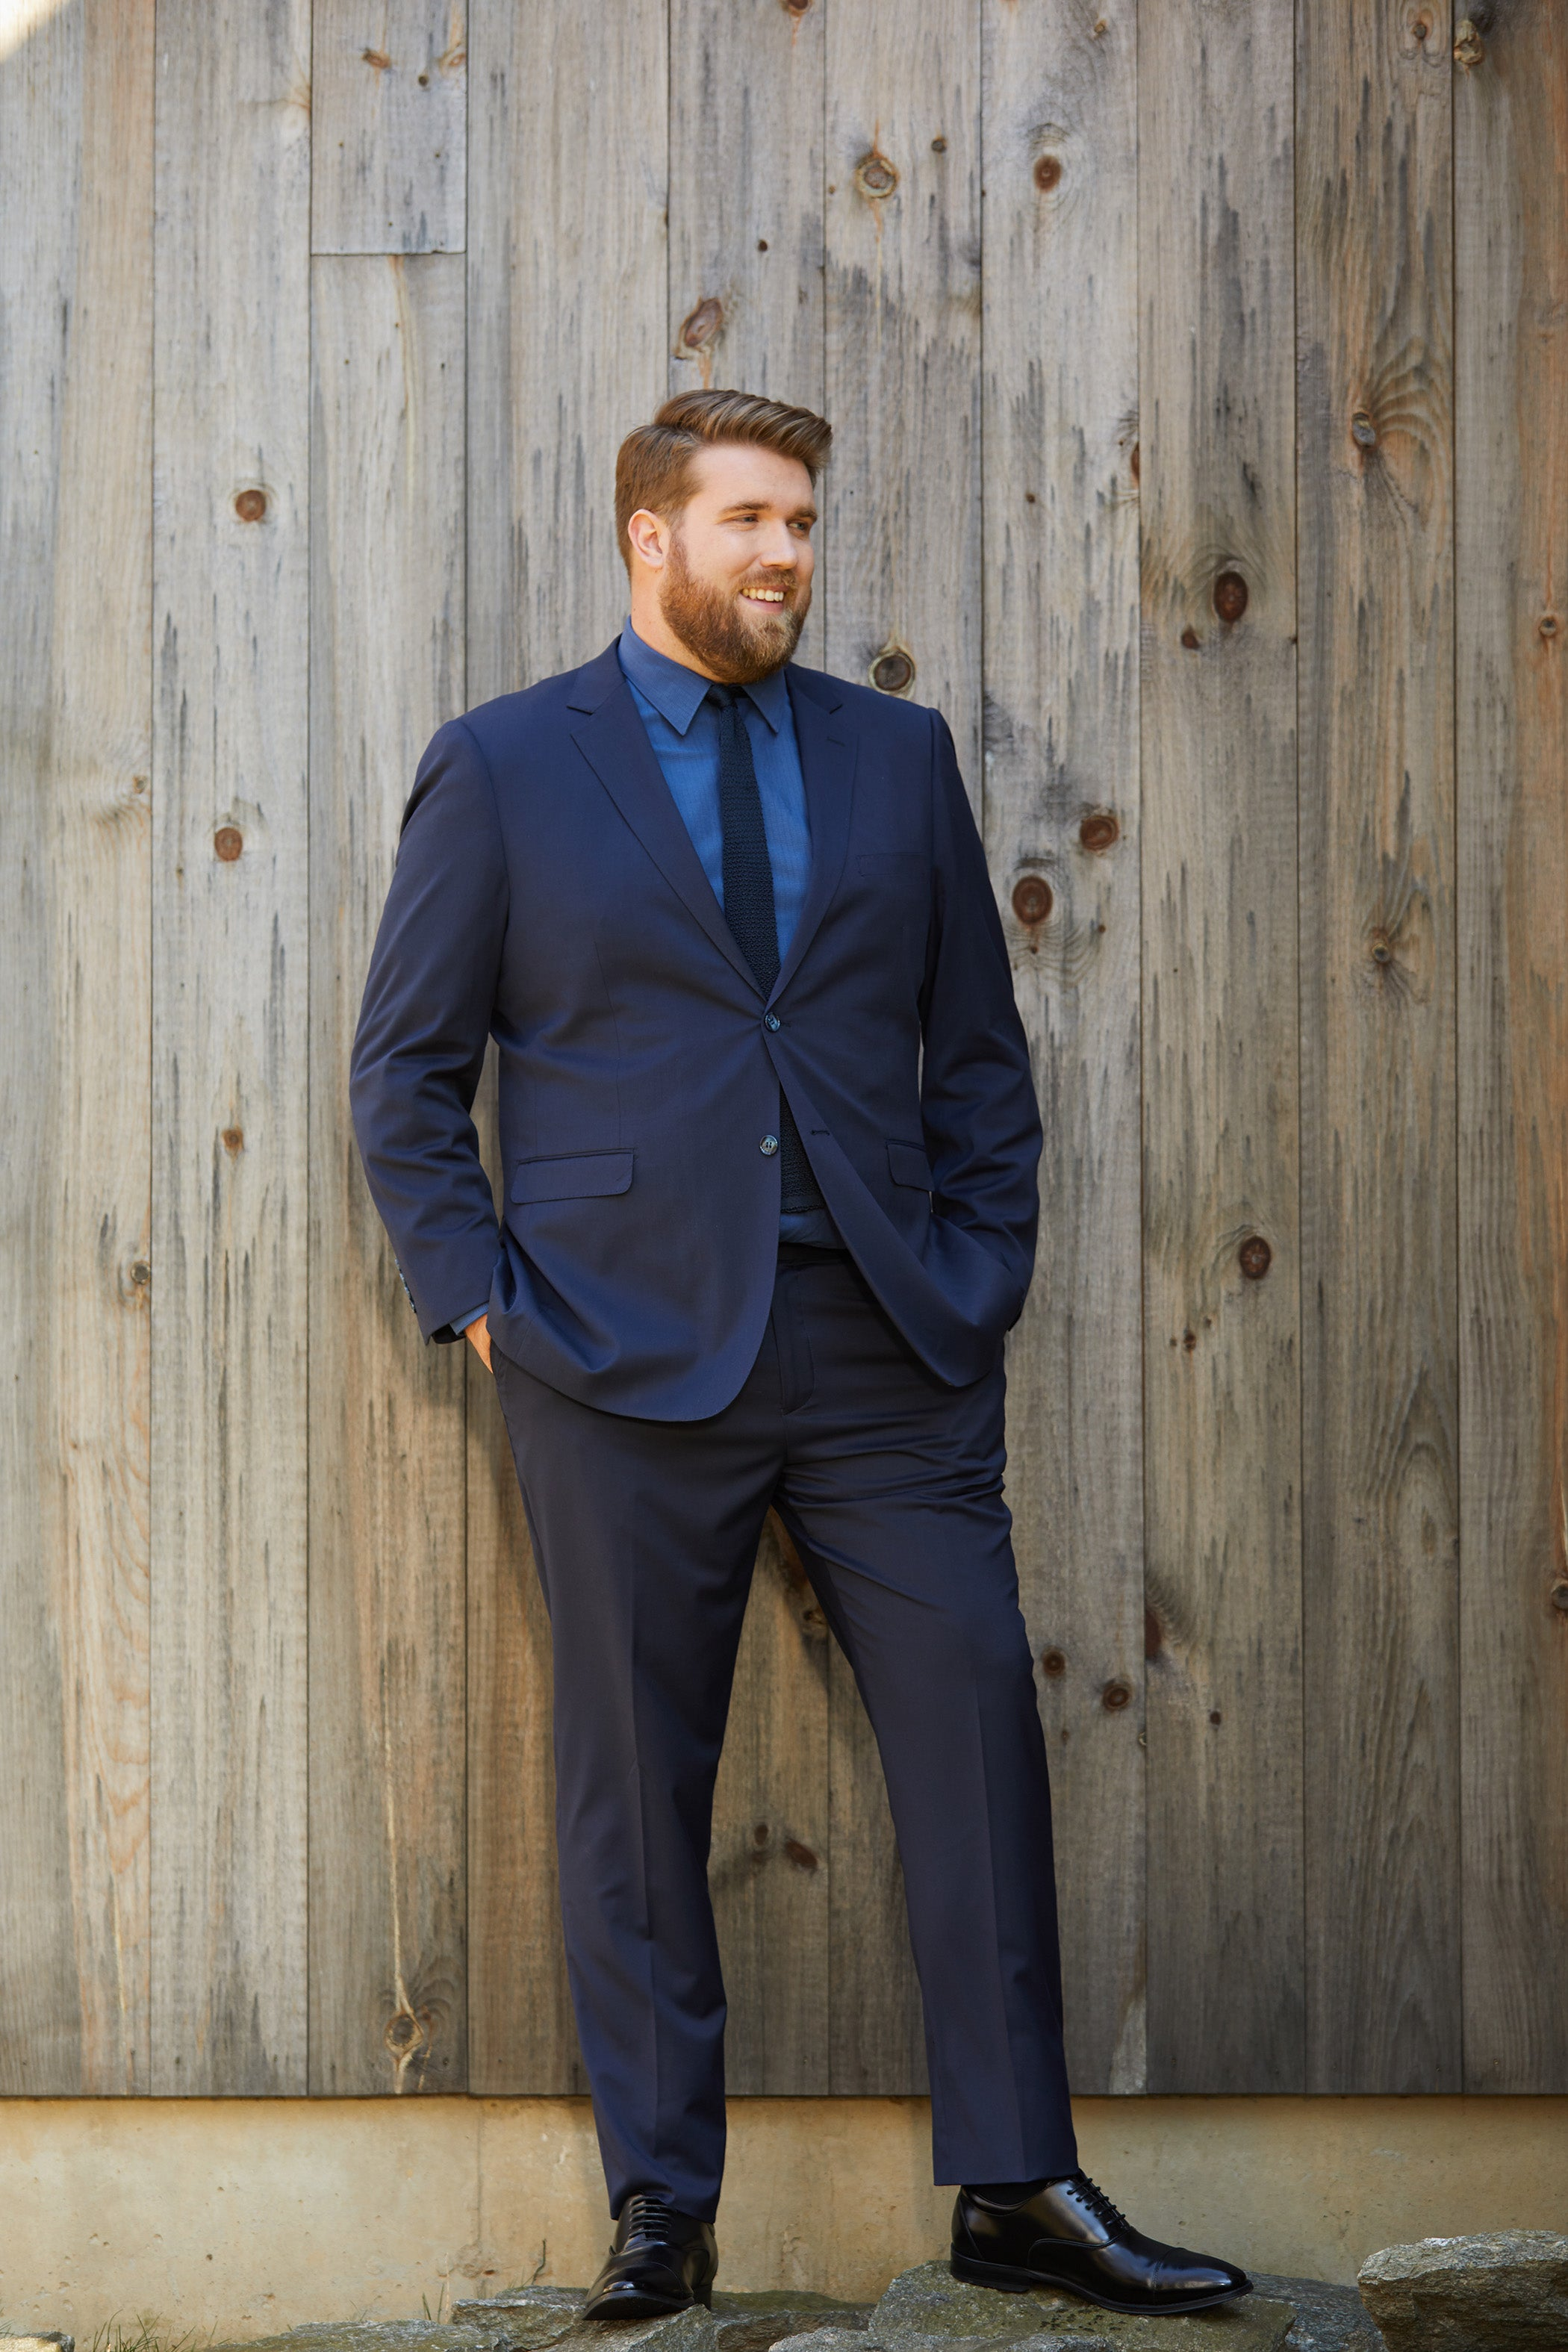 Dos And Donts For Men S Wedding Guest Attire The Groomsman Suit,Bridesmaid Red Dresses For Wedding